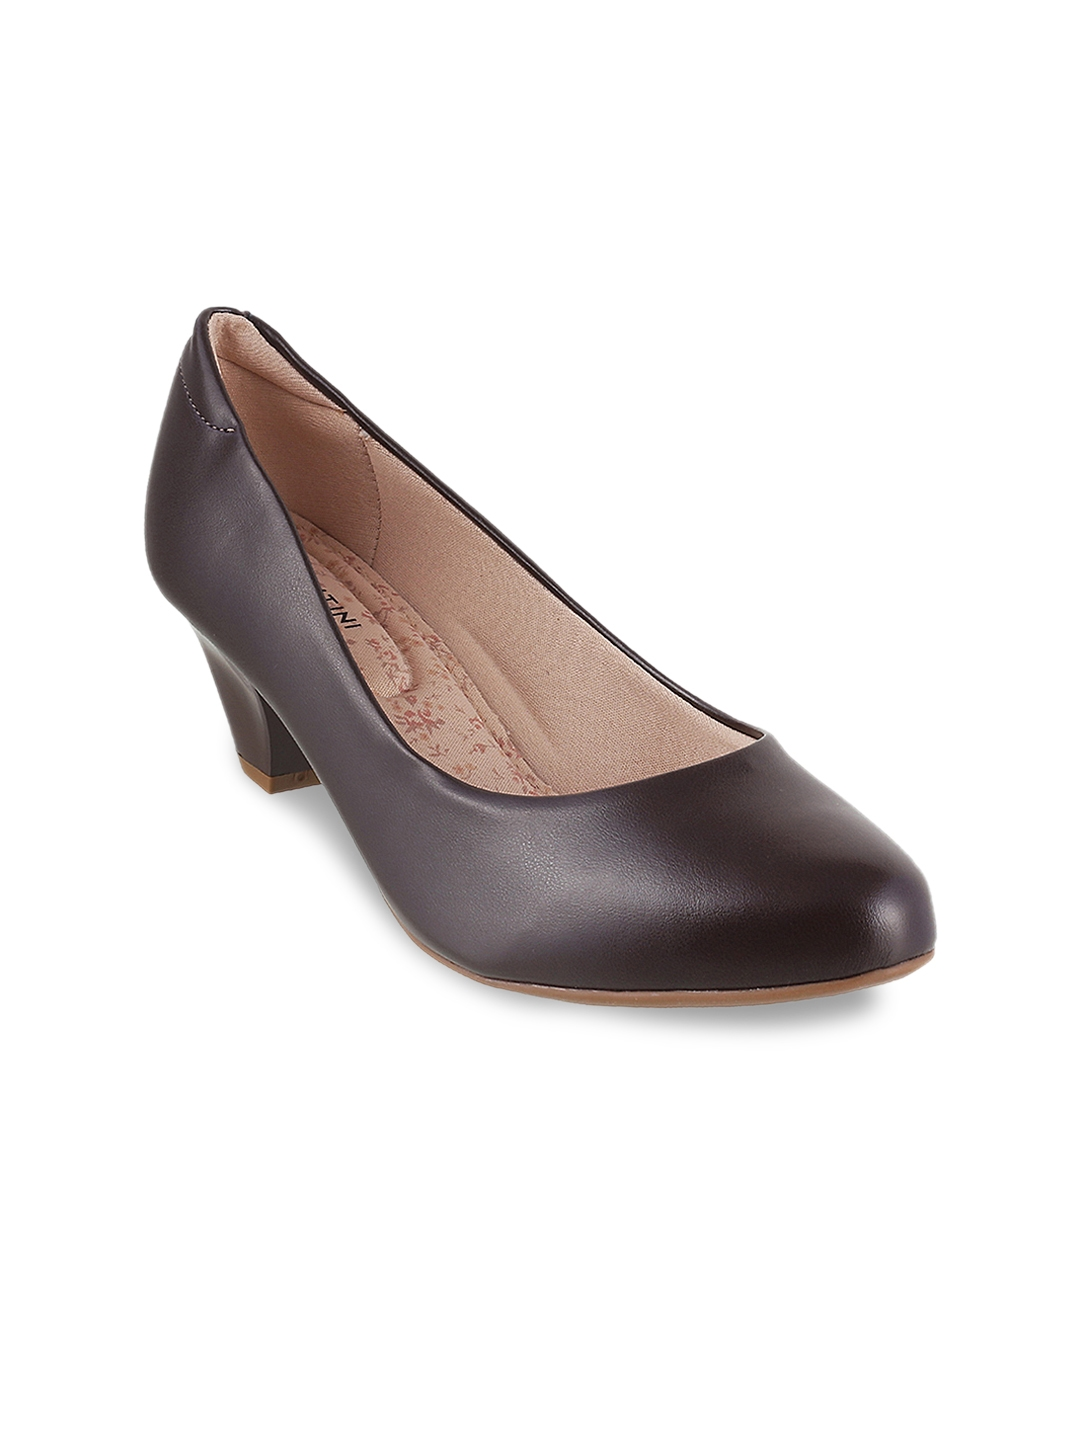 cfd2f935c7e Buy J.FONTINI Women Brown Solid Pumps - Heels for Women 7265311